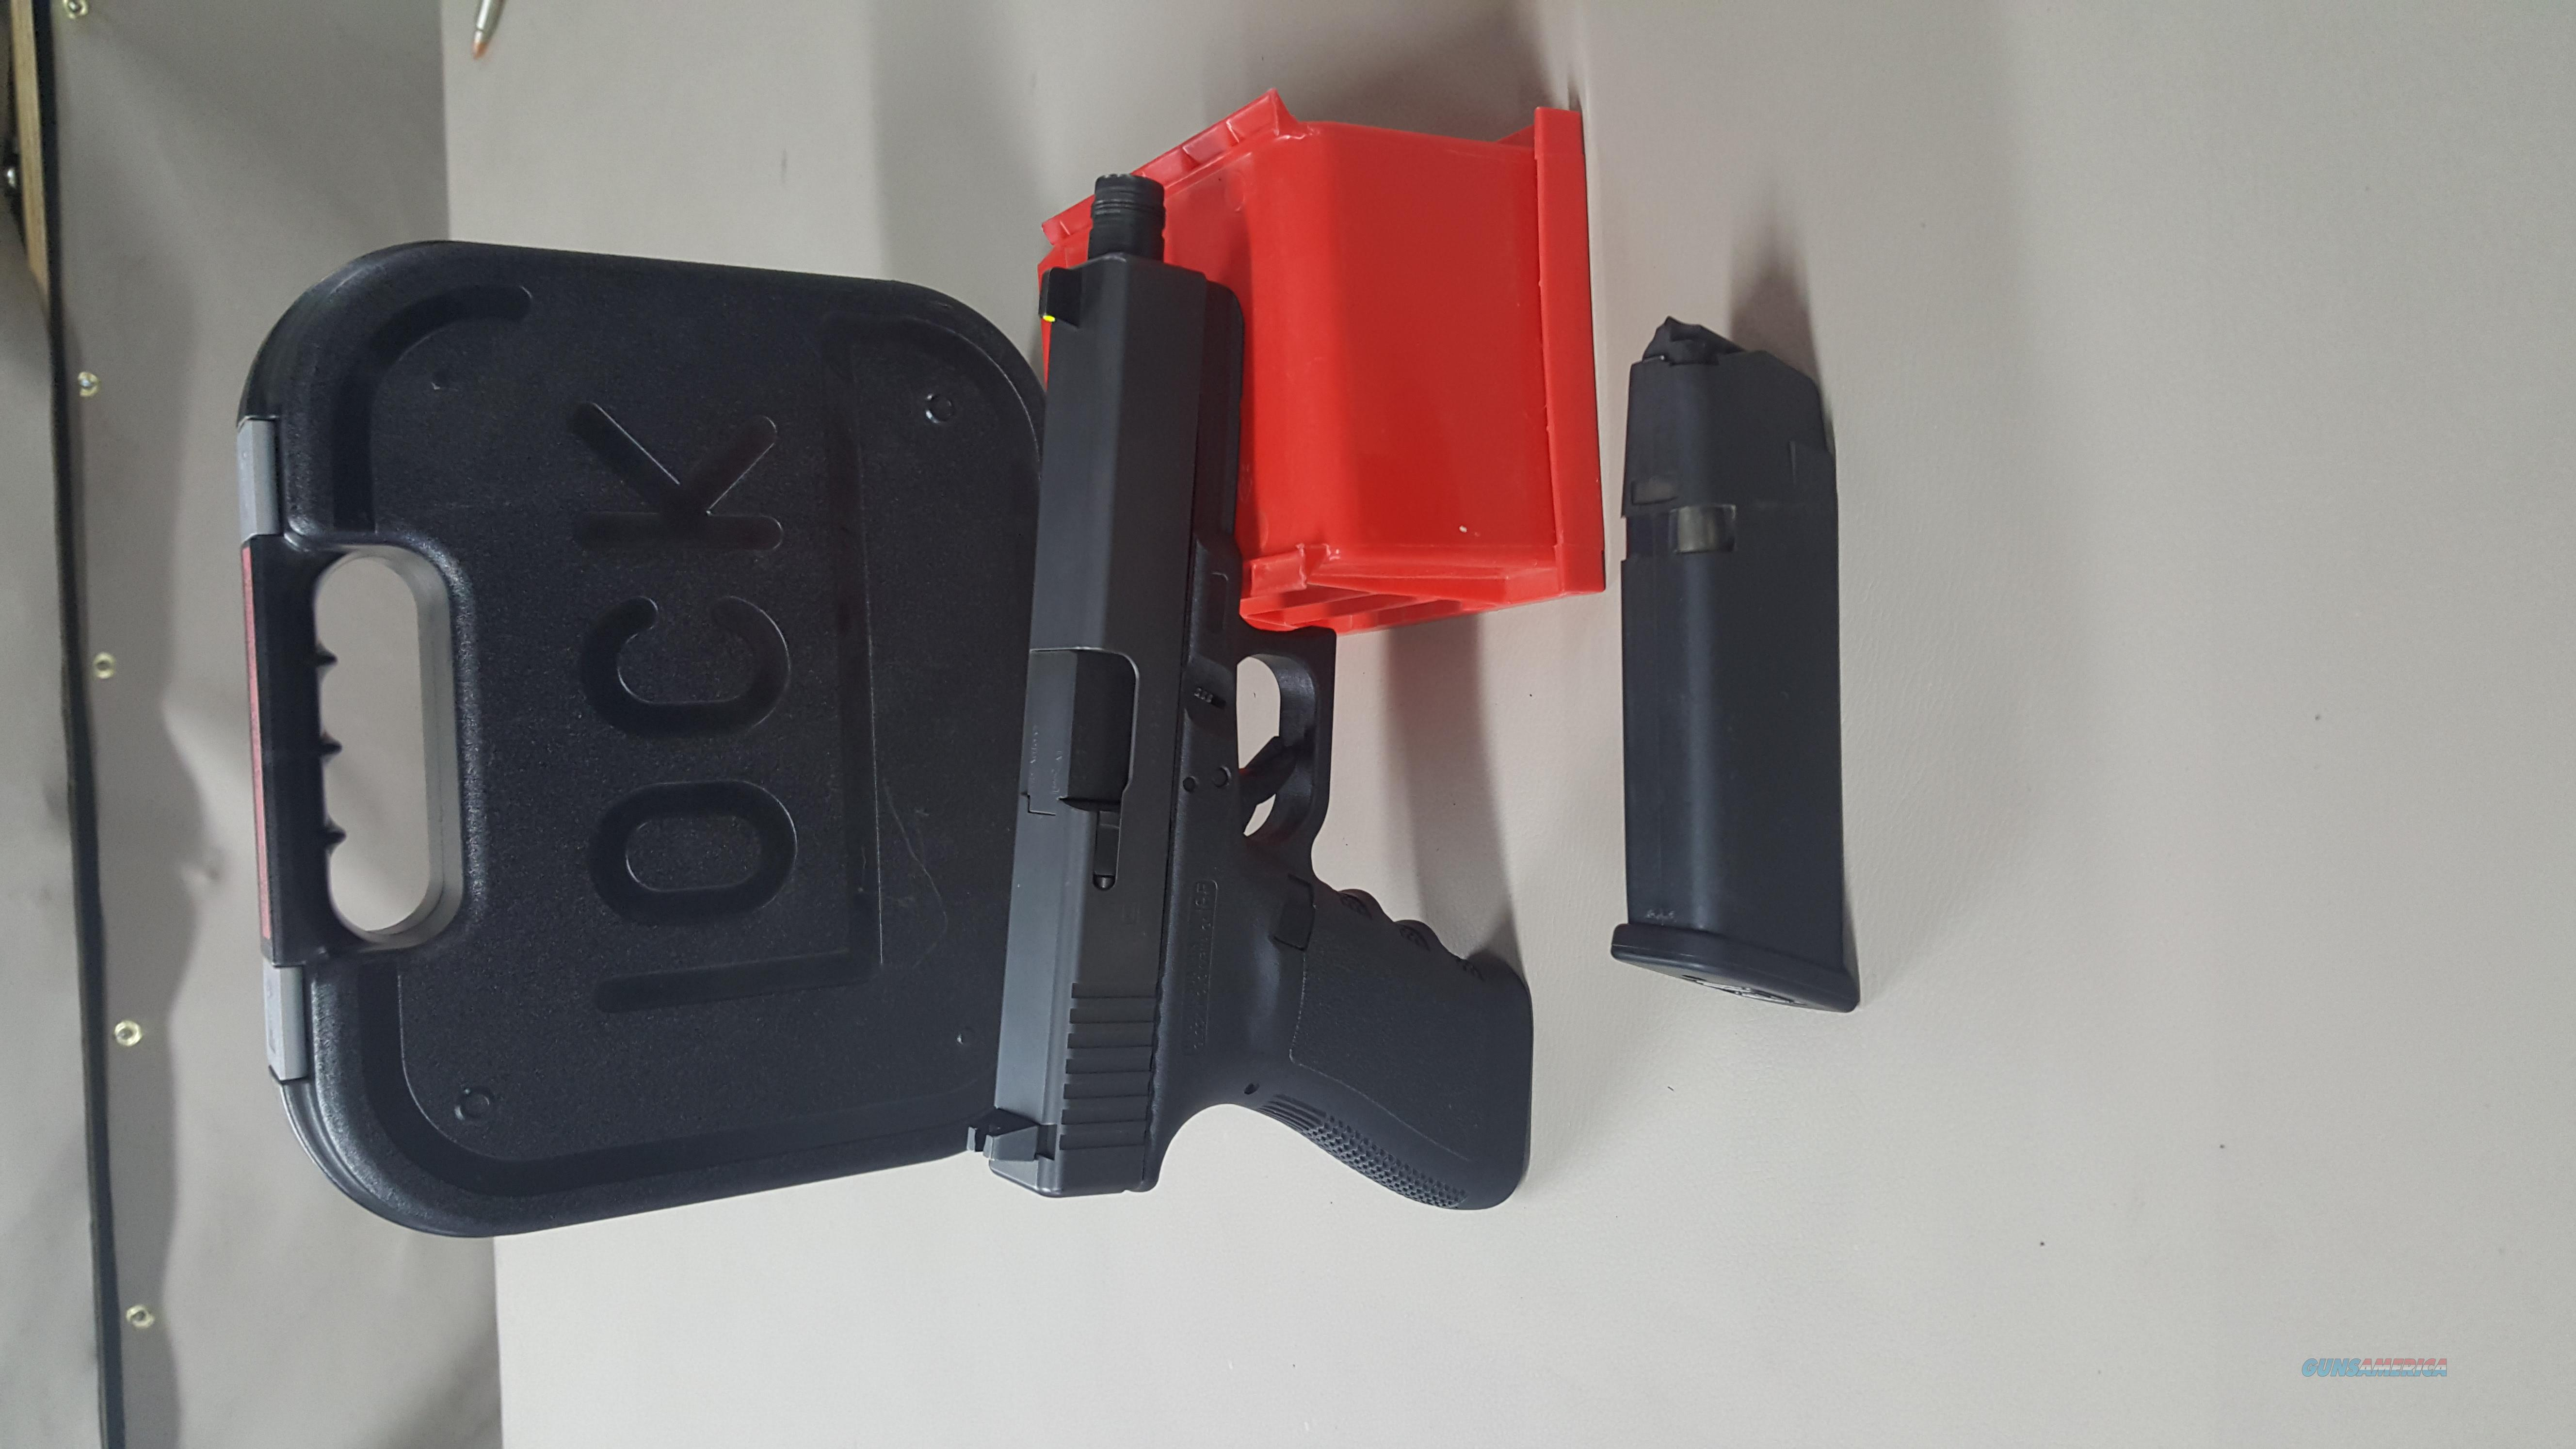 GLOCK 21SF .45ACP GEN 3 Threaded Barrel Tall Sights demo model  Guns > Pistols > Glock Pistols > 20/21